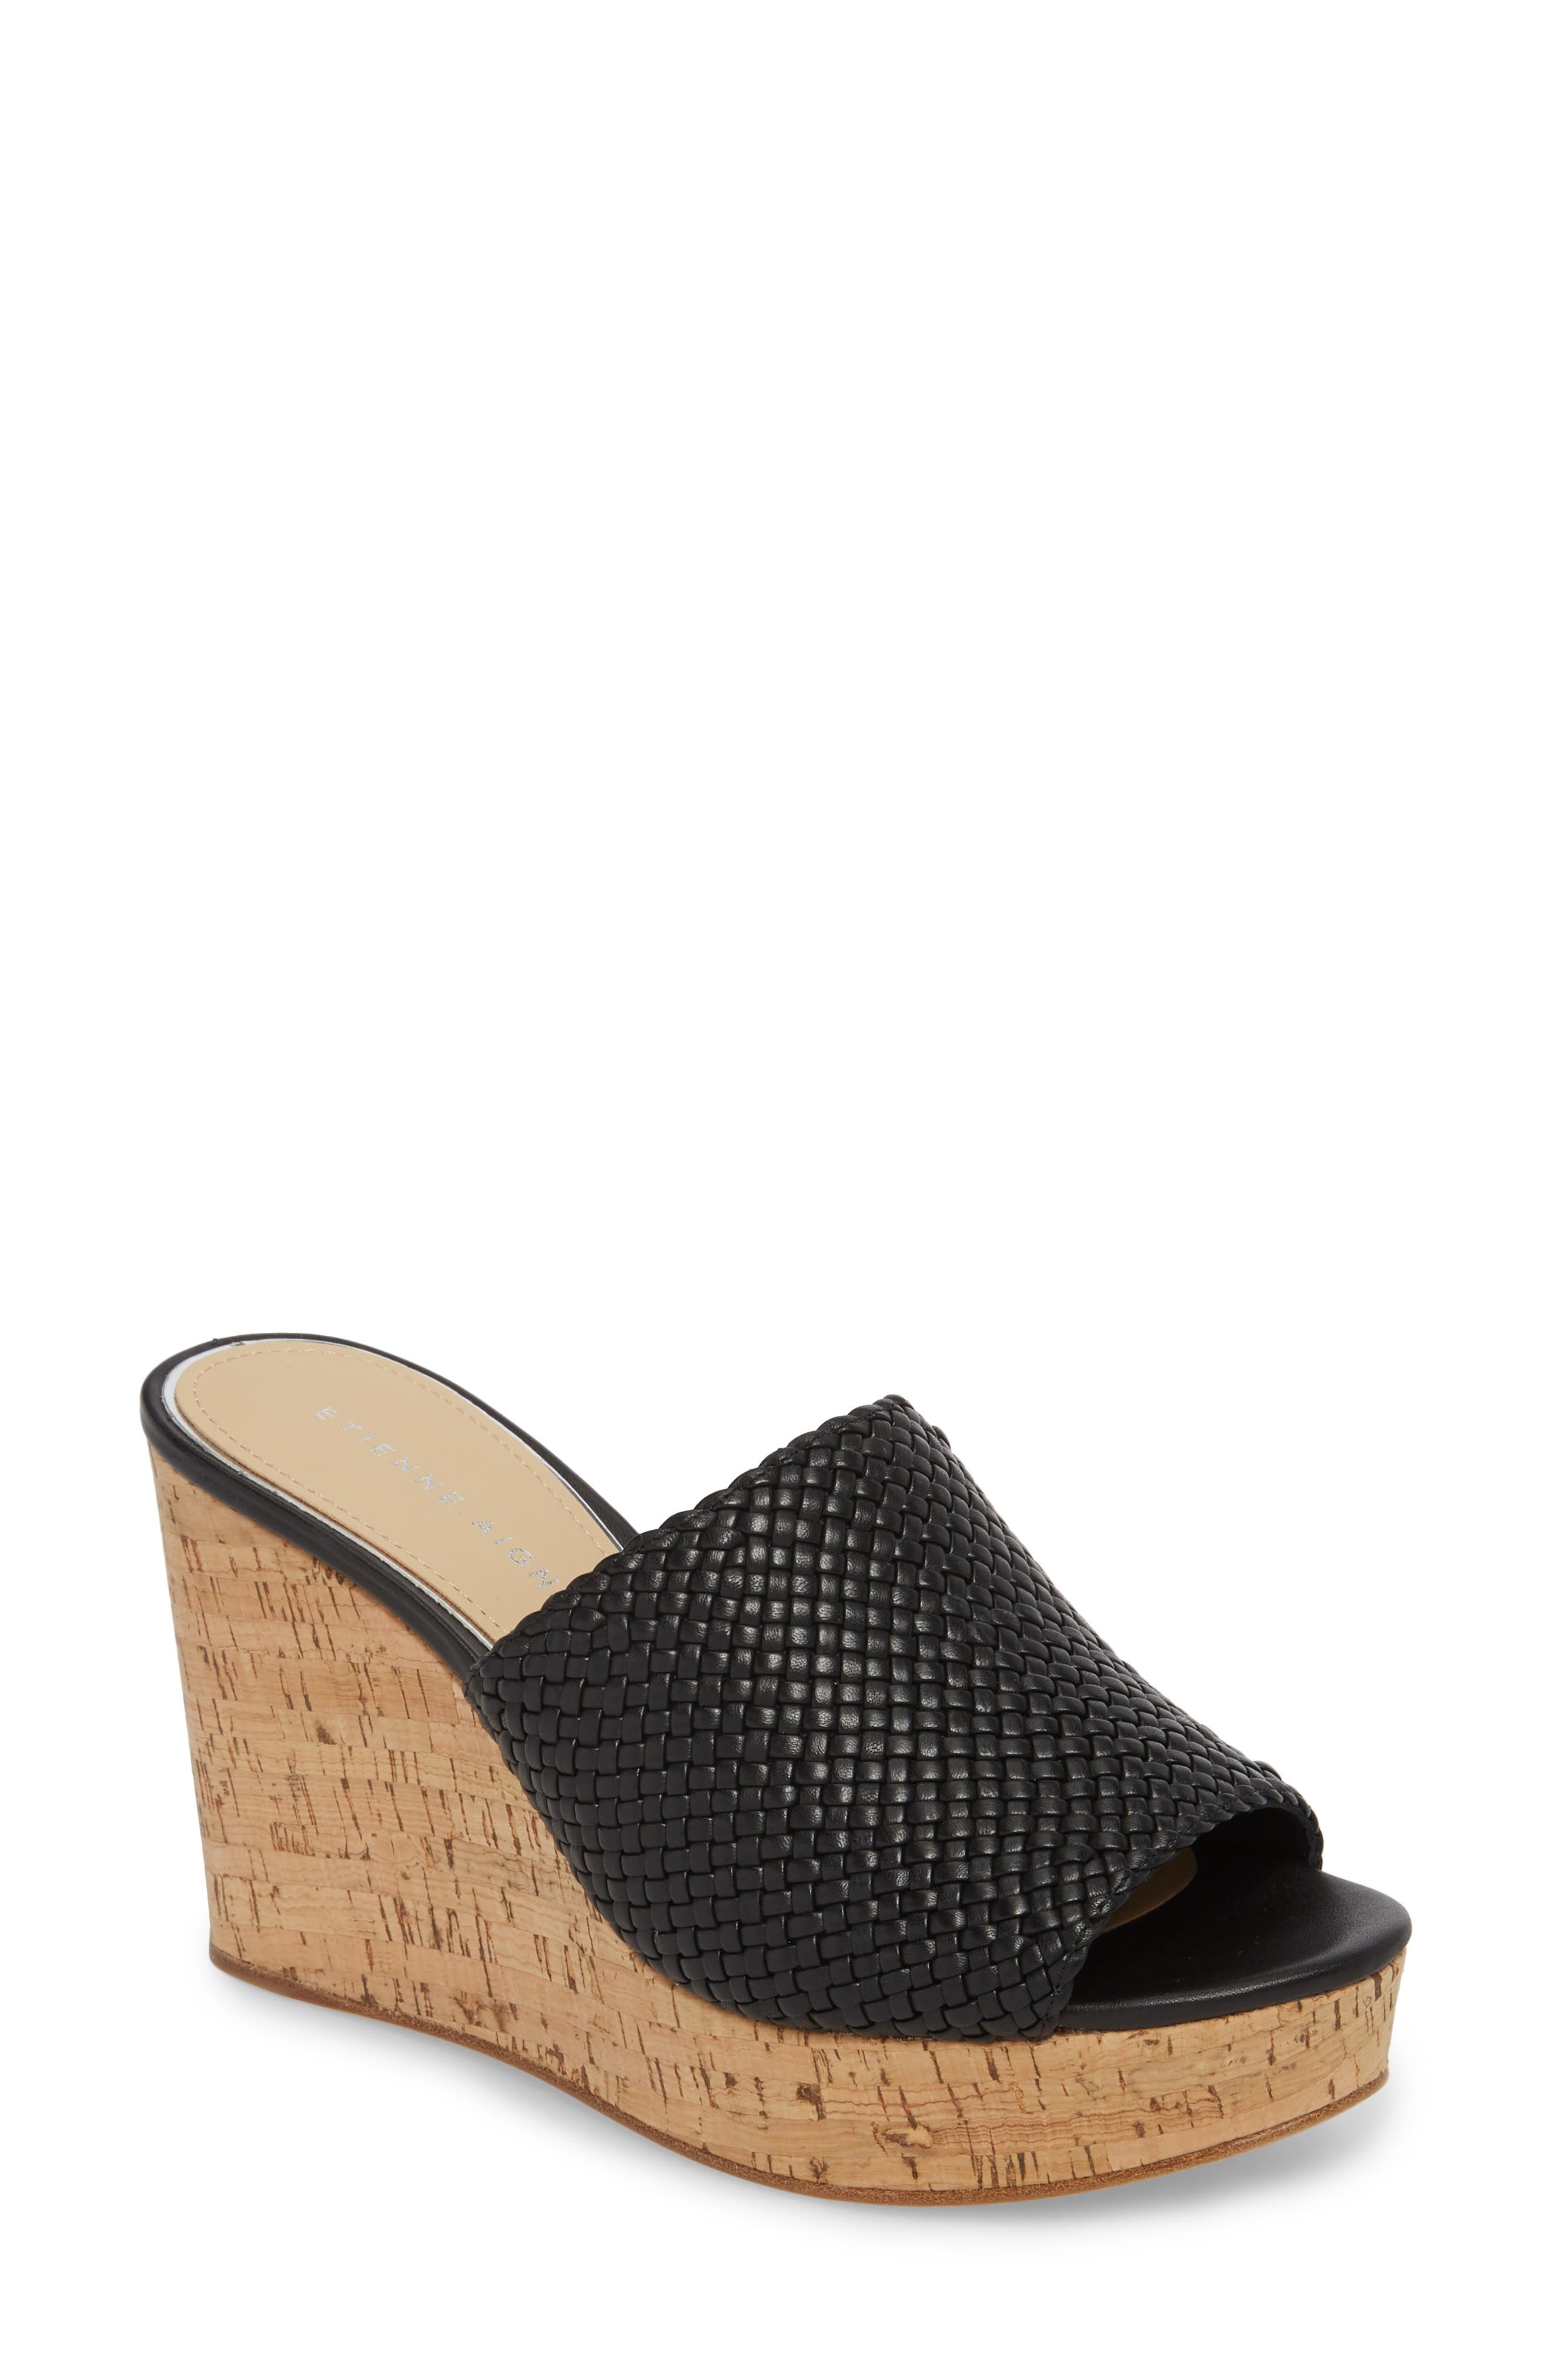 Daiquiri Wedge Mule,                         Main,                         color, BLACK LEATHER